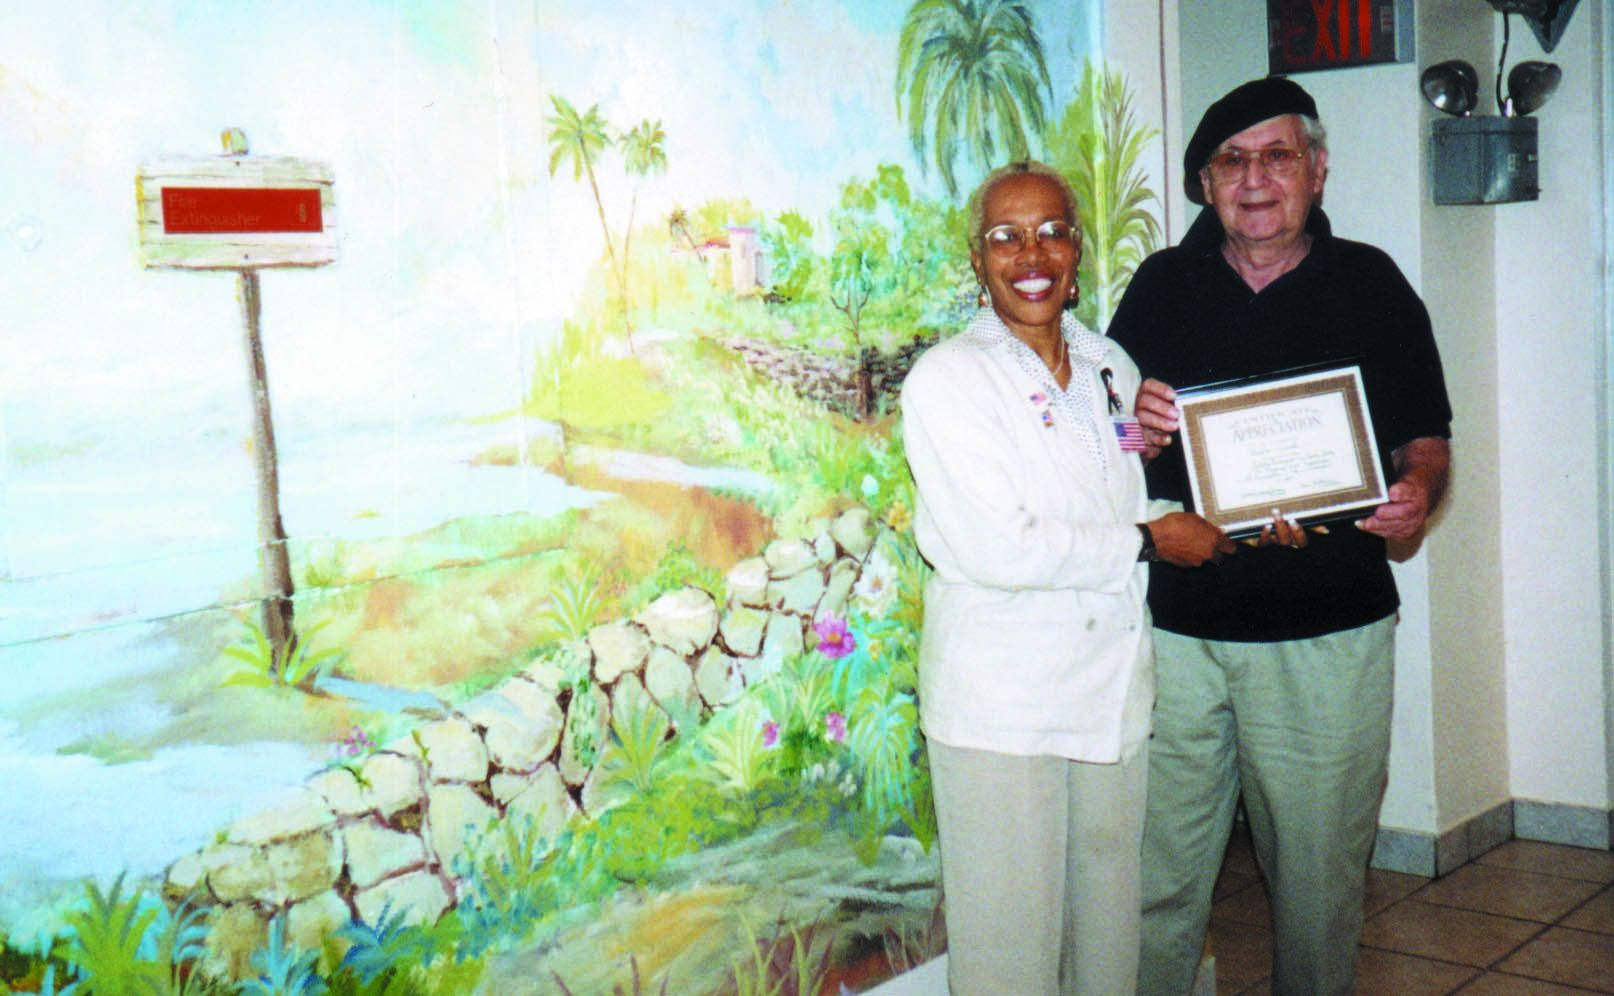 Dott Nicholson-Brown presenting award to Pablo Verol for Mediterranean Mural